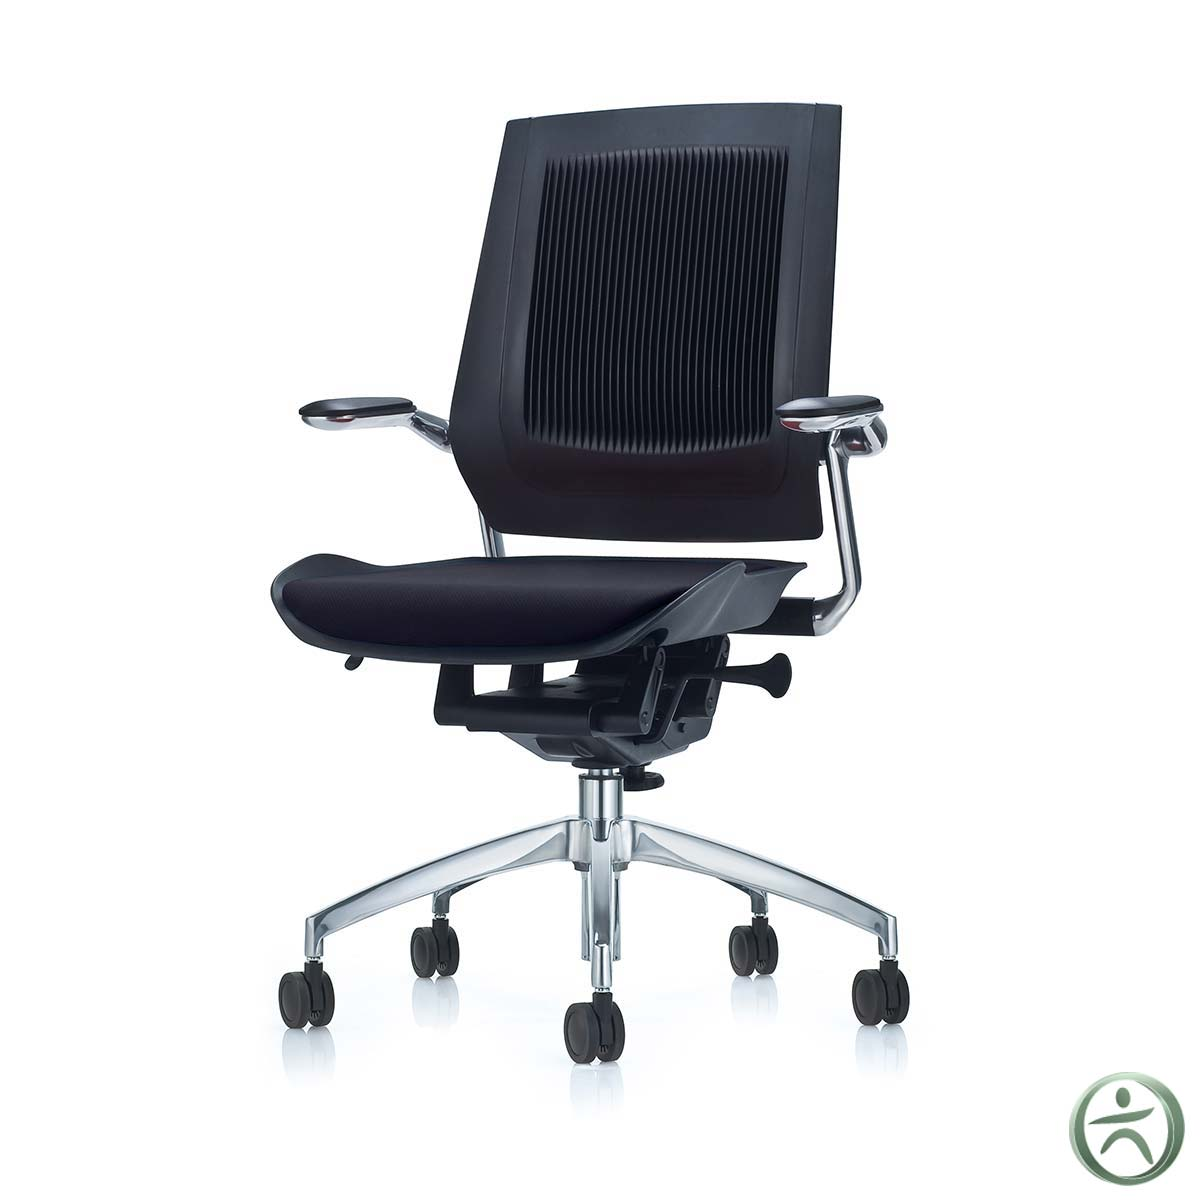 Raynor Chairs Shop Raynor Bodyflex Task Chairs